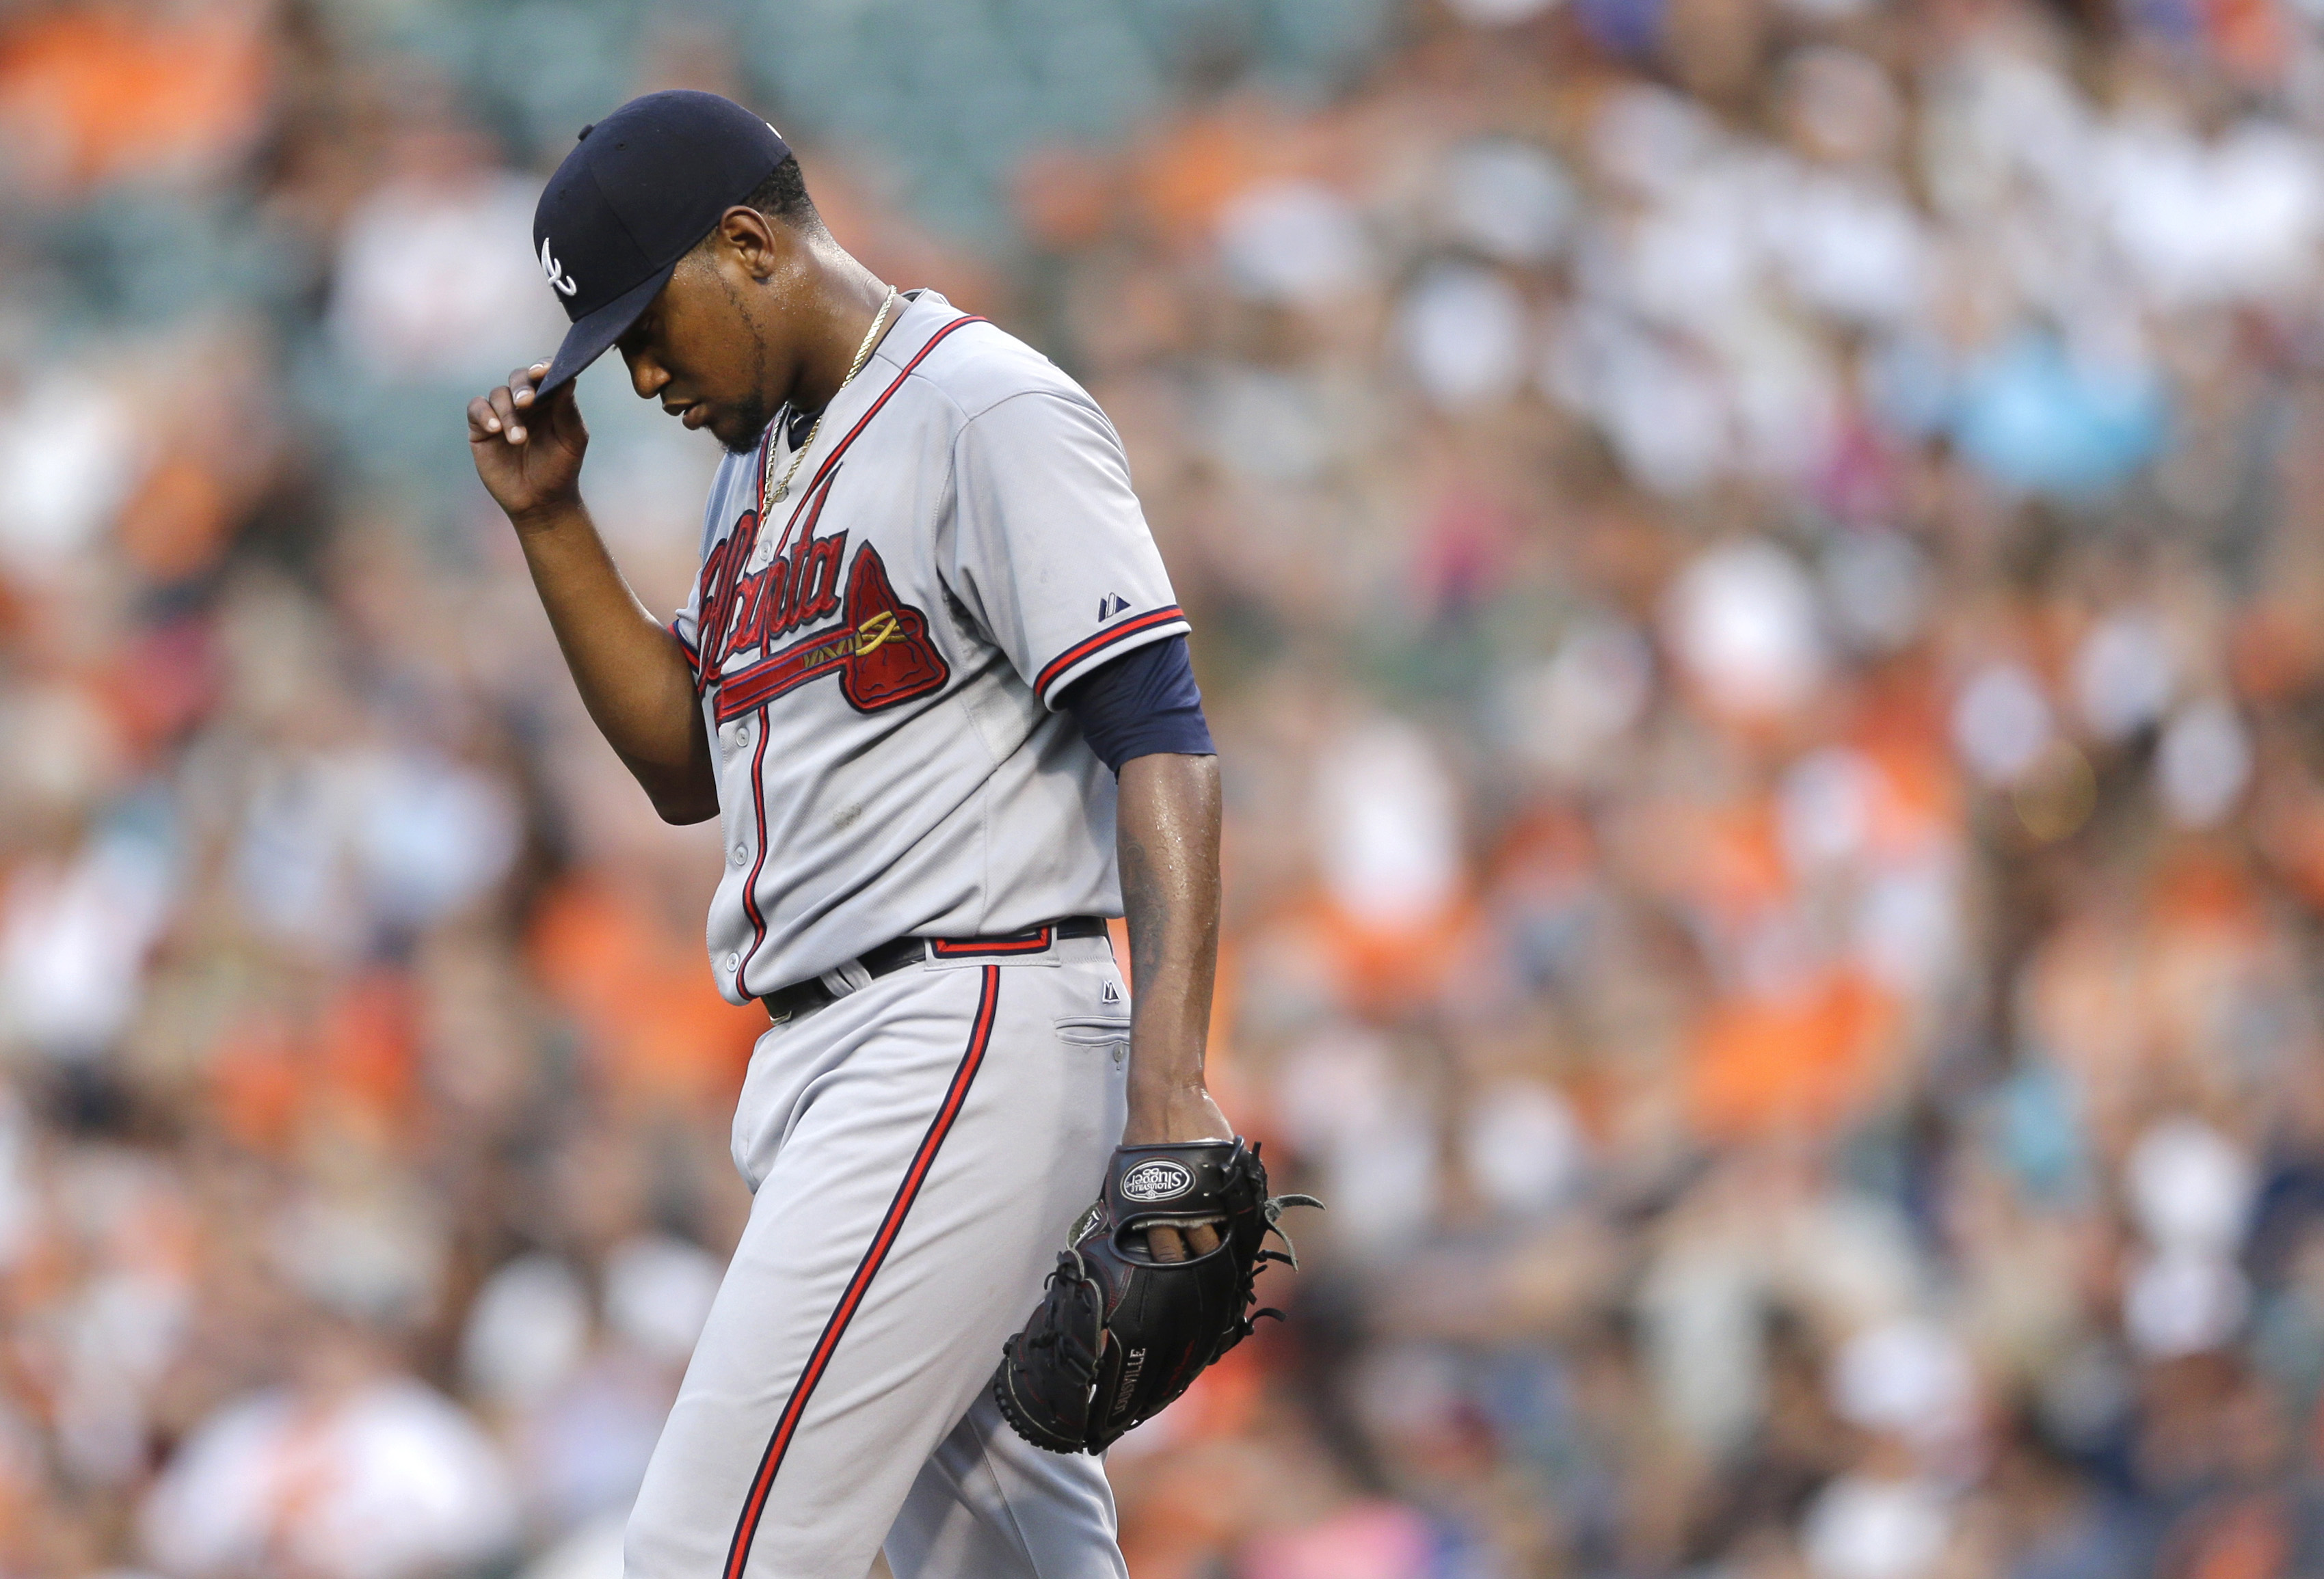 Atlanta Braves starting pitcher Julio Teheran adjusts his cap after walking Baltimore Orioles' Chris Parmelee in the first inning of an interleague baseball game, Tuesday, July 28, 2015, in Baltimore. Teheran gave up three runs in the first. (AP Photo/Pat